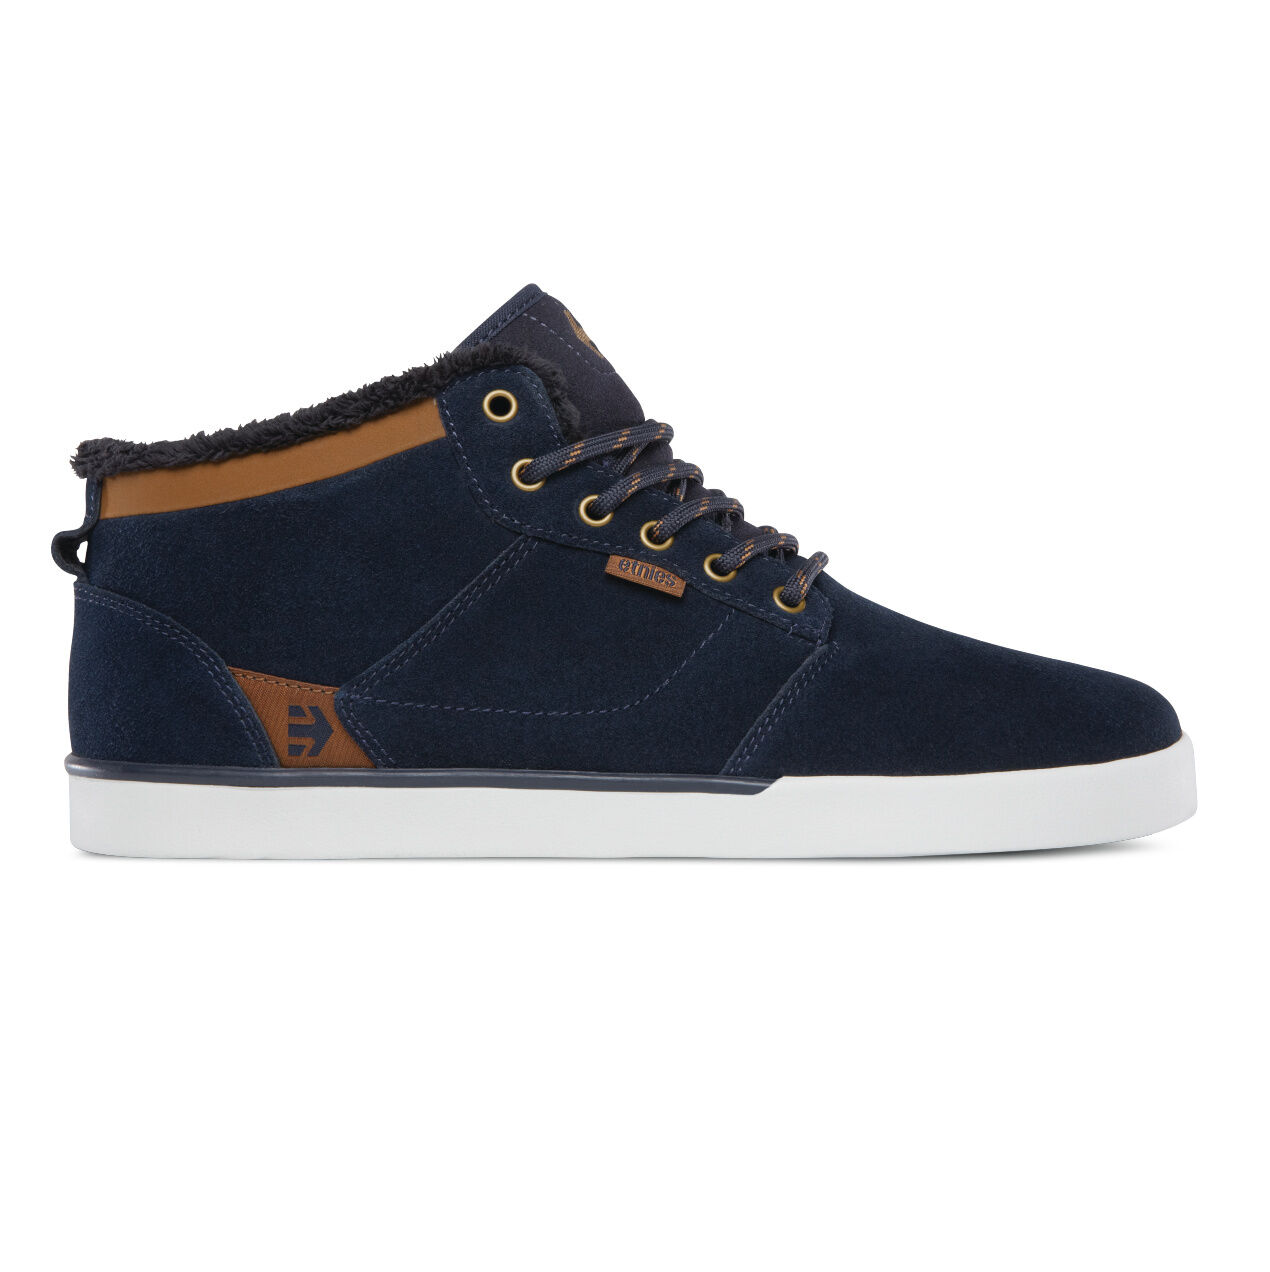 Etnies jefferson mid zapatos caballero zapatillas Navy 4101000398-480 forro